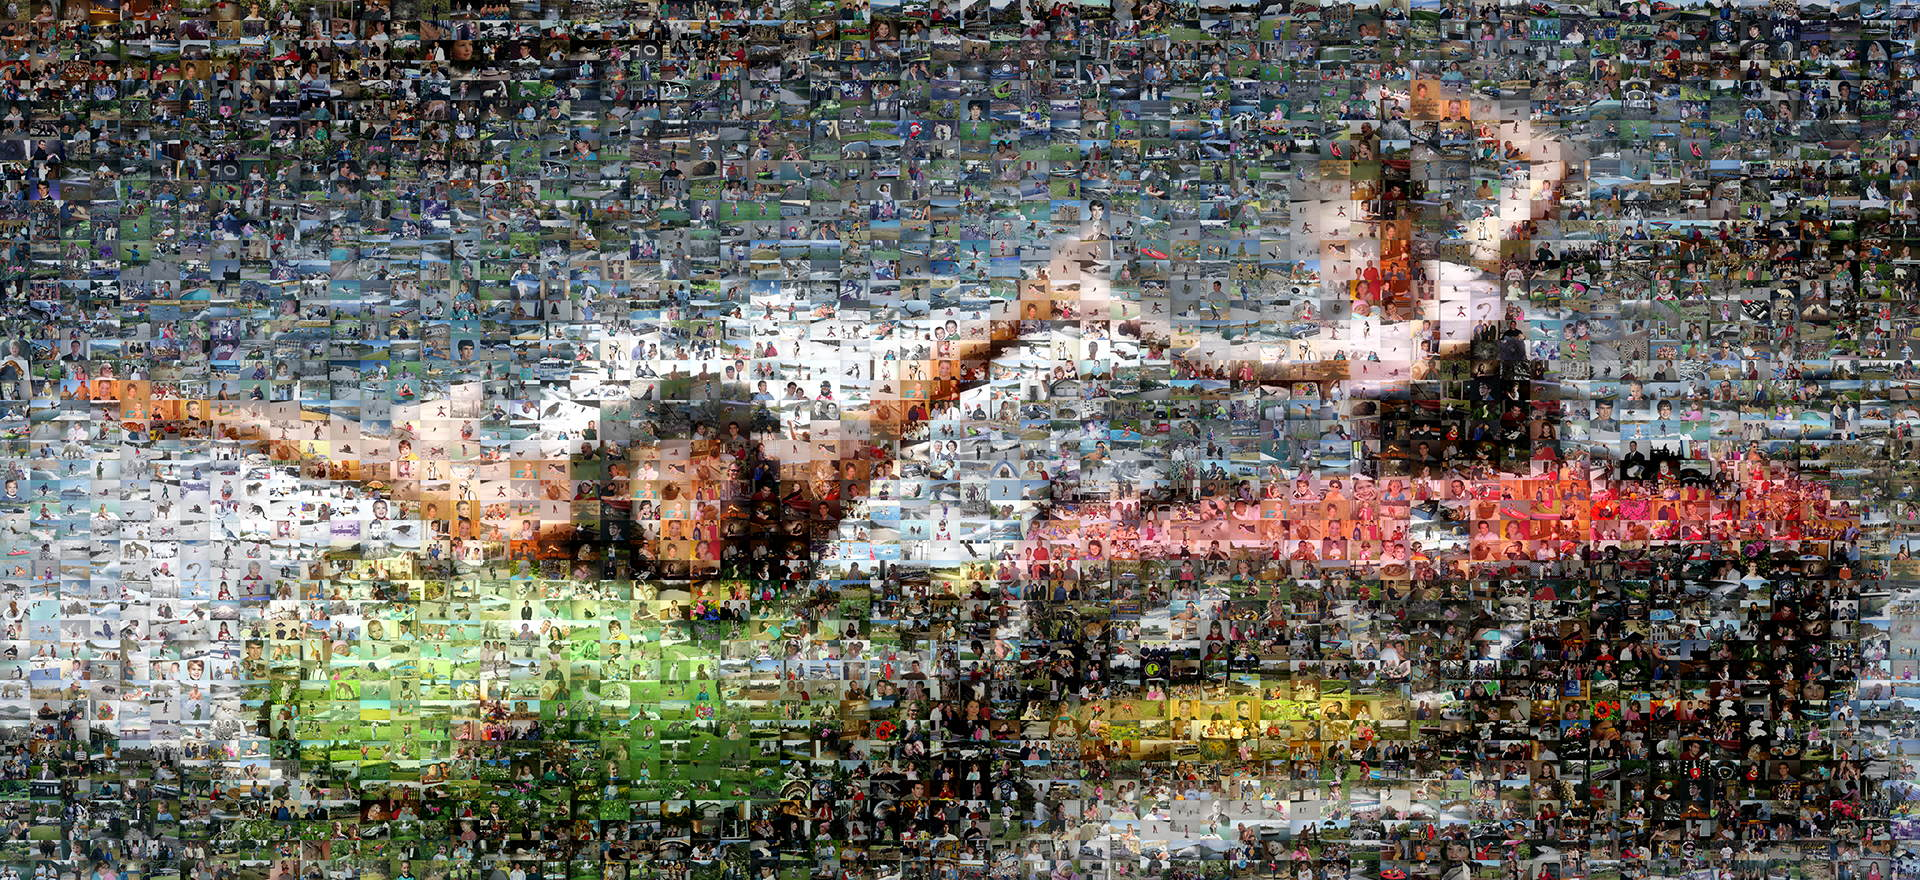 photo mosaic this action shot was captured as a mosaic using 2,773 family photos